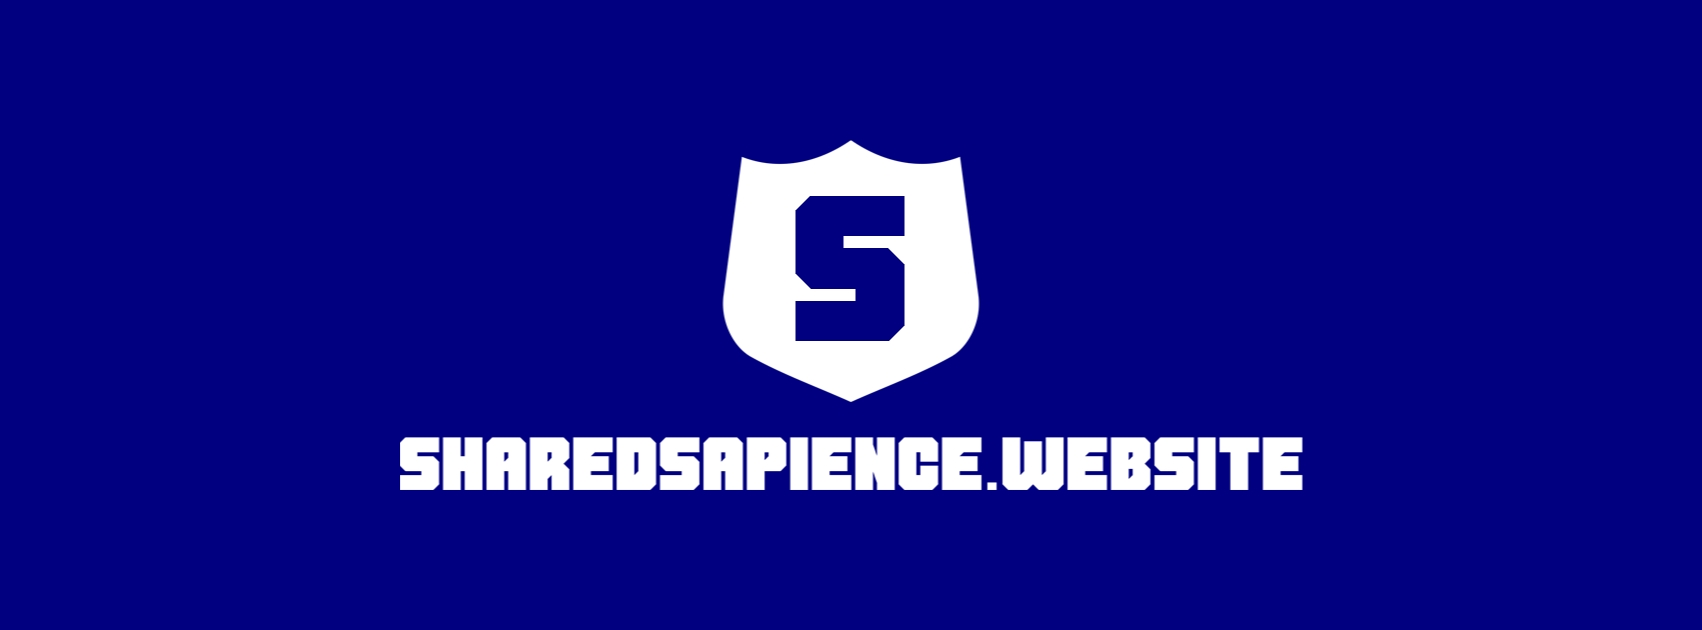 sharedsapience.website